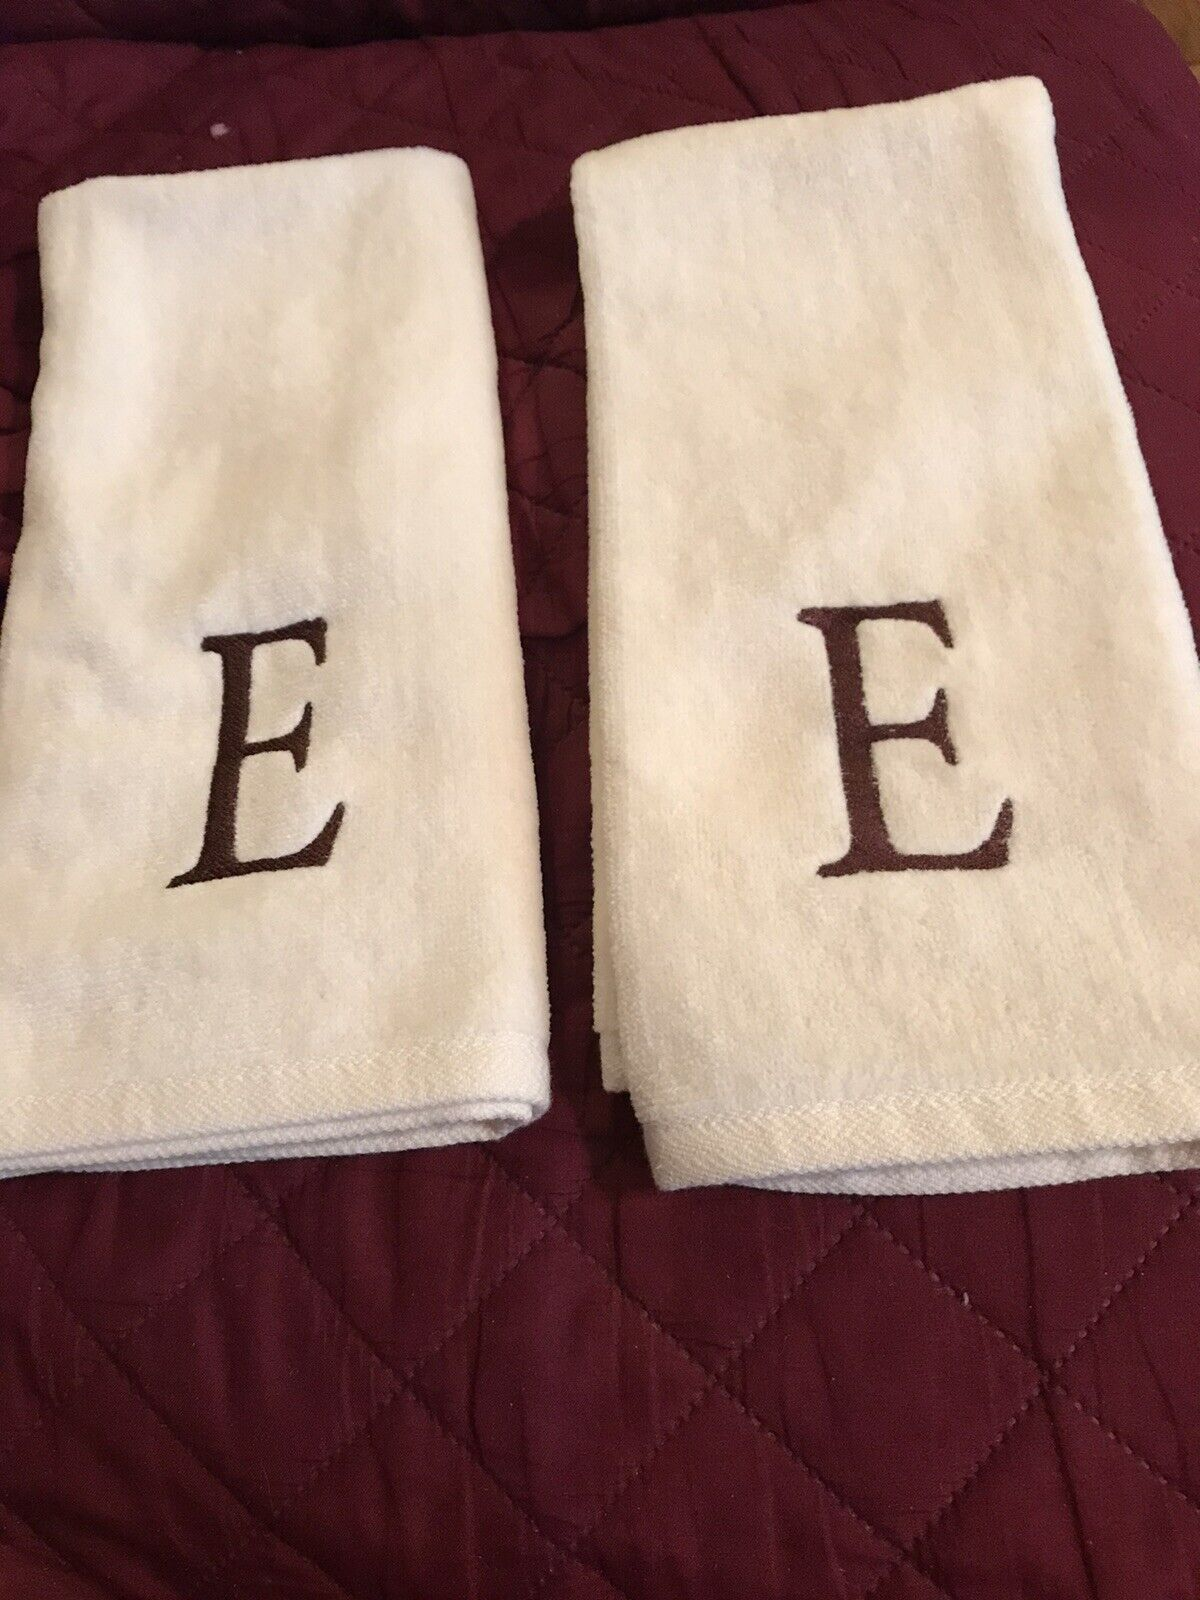 """(2) Sonoma Personalized Hand Towels 24"""" X 16"""" Ivory w/ Embroidered """"E"""" In Brown"""